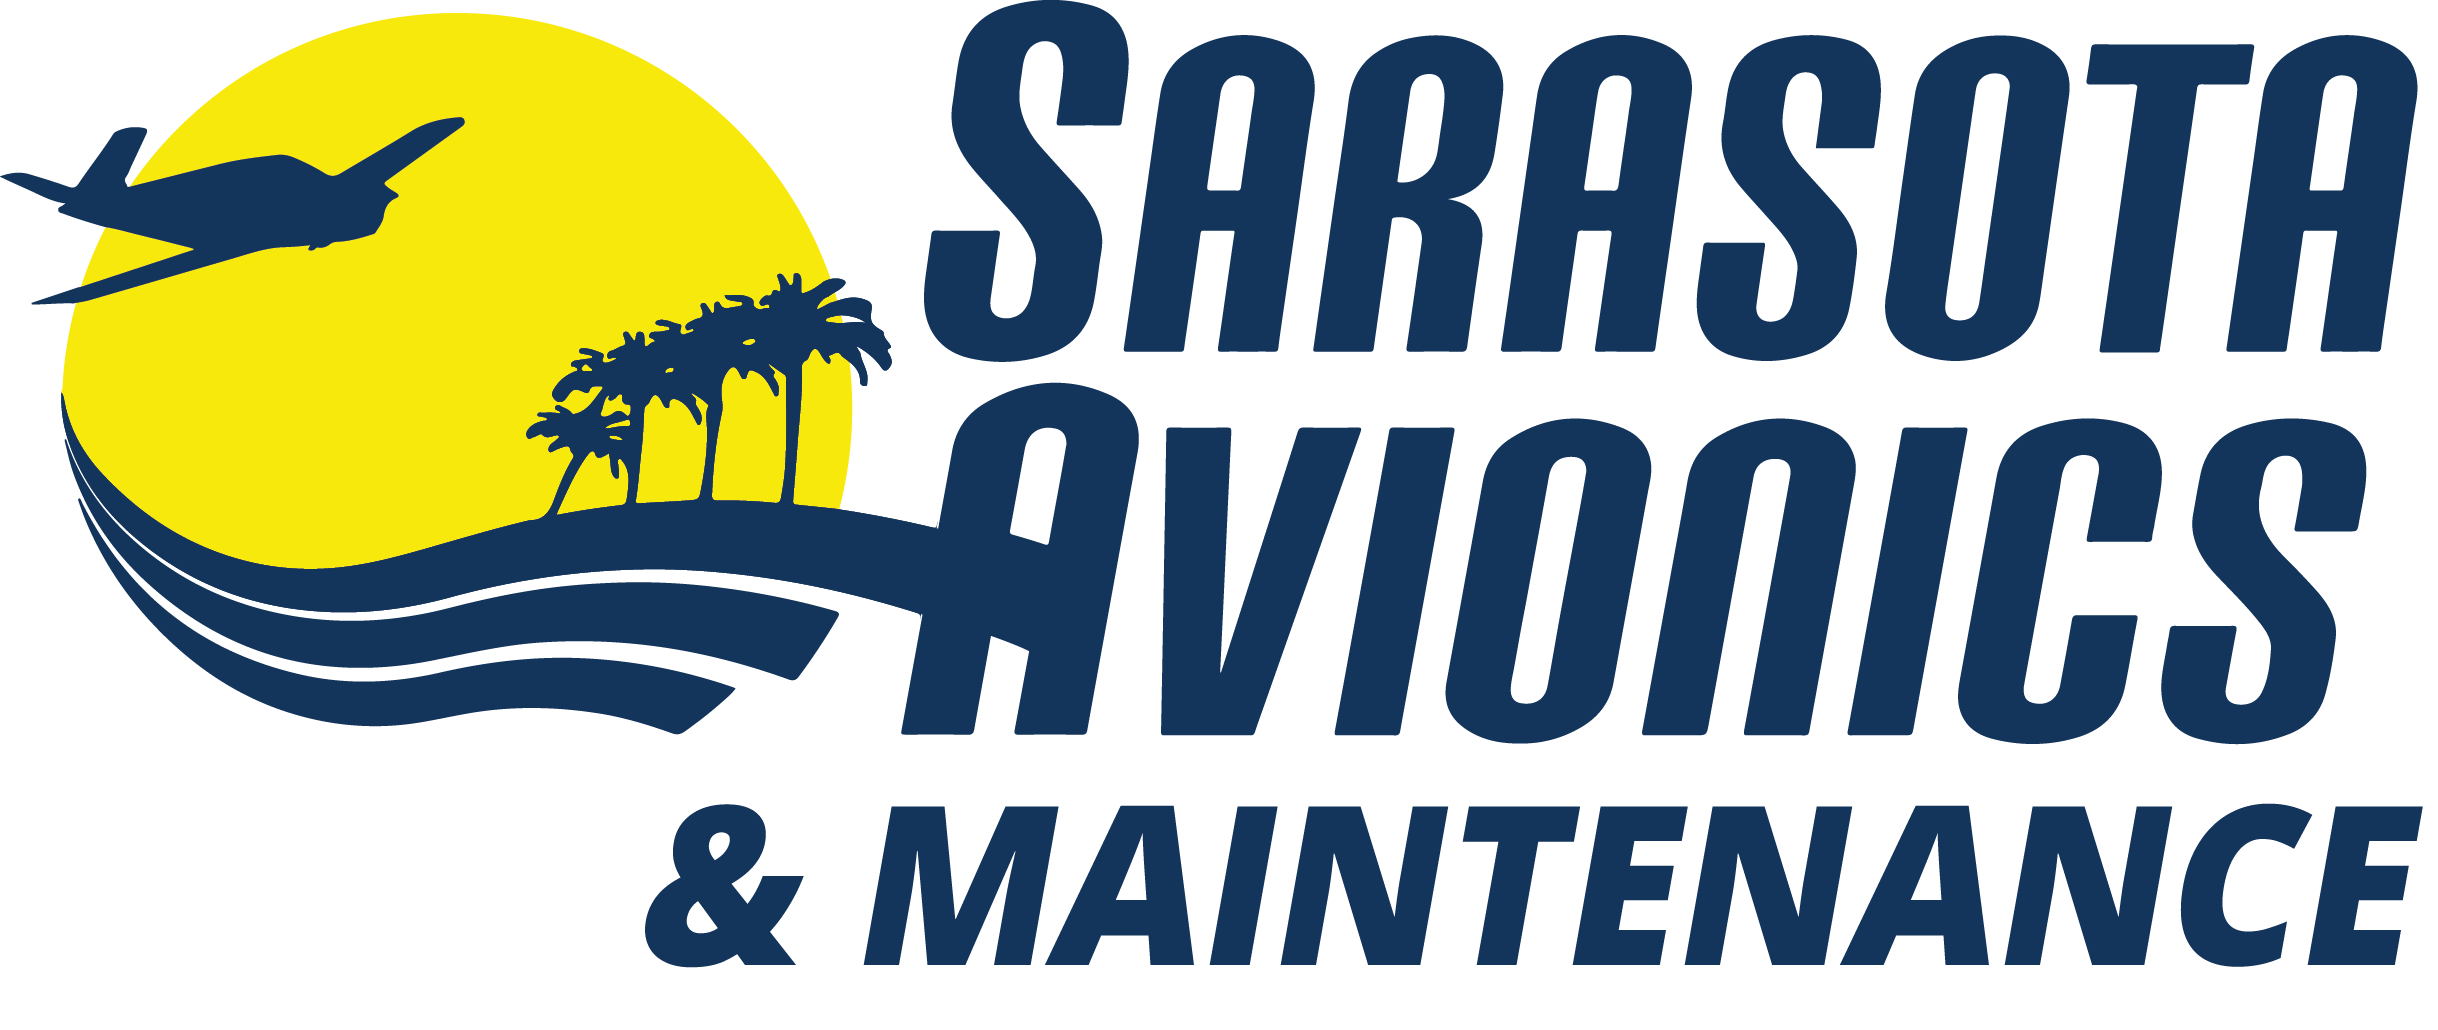 sarasota avionics international